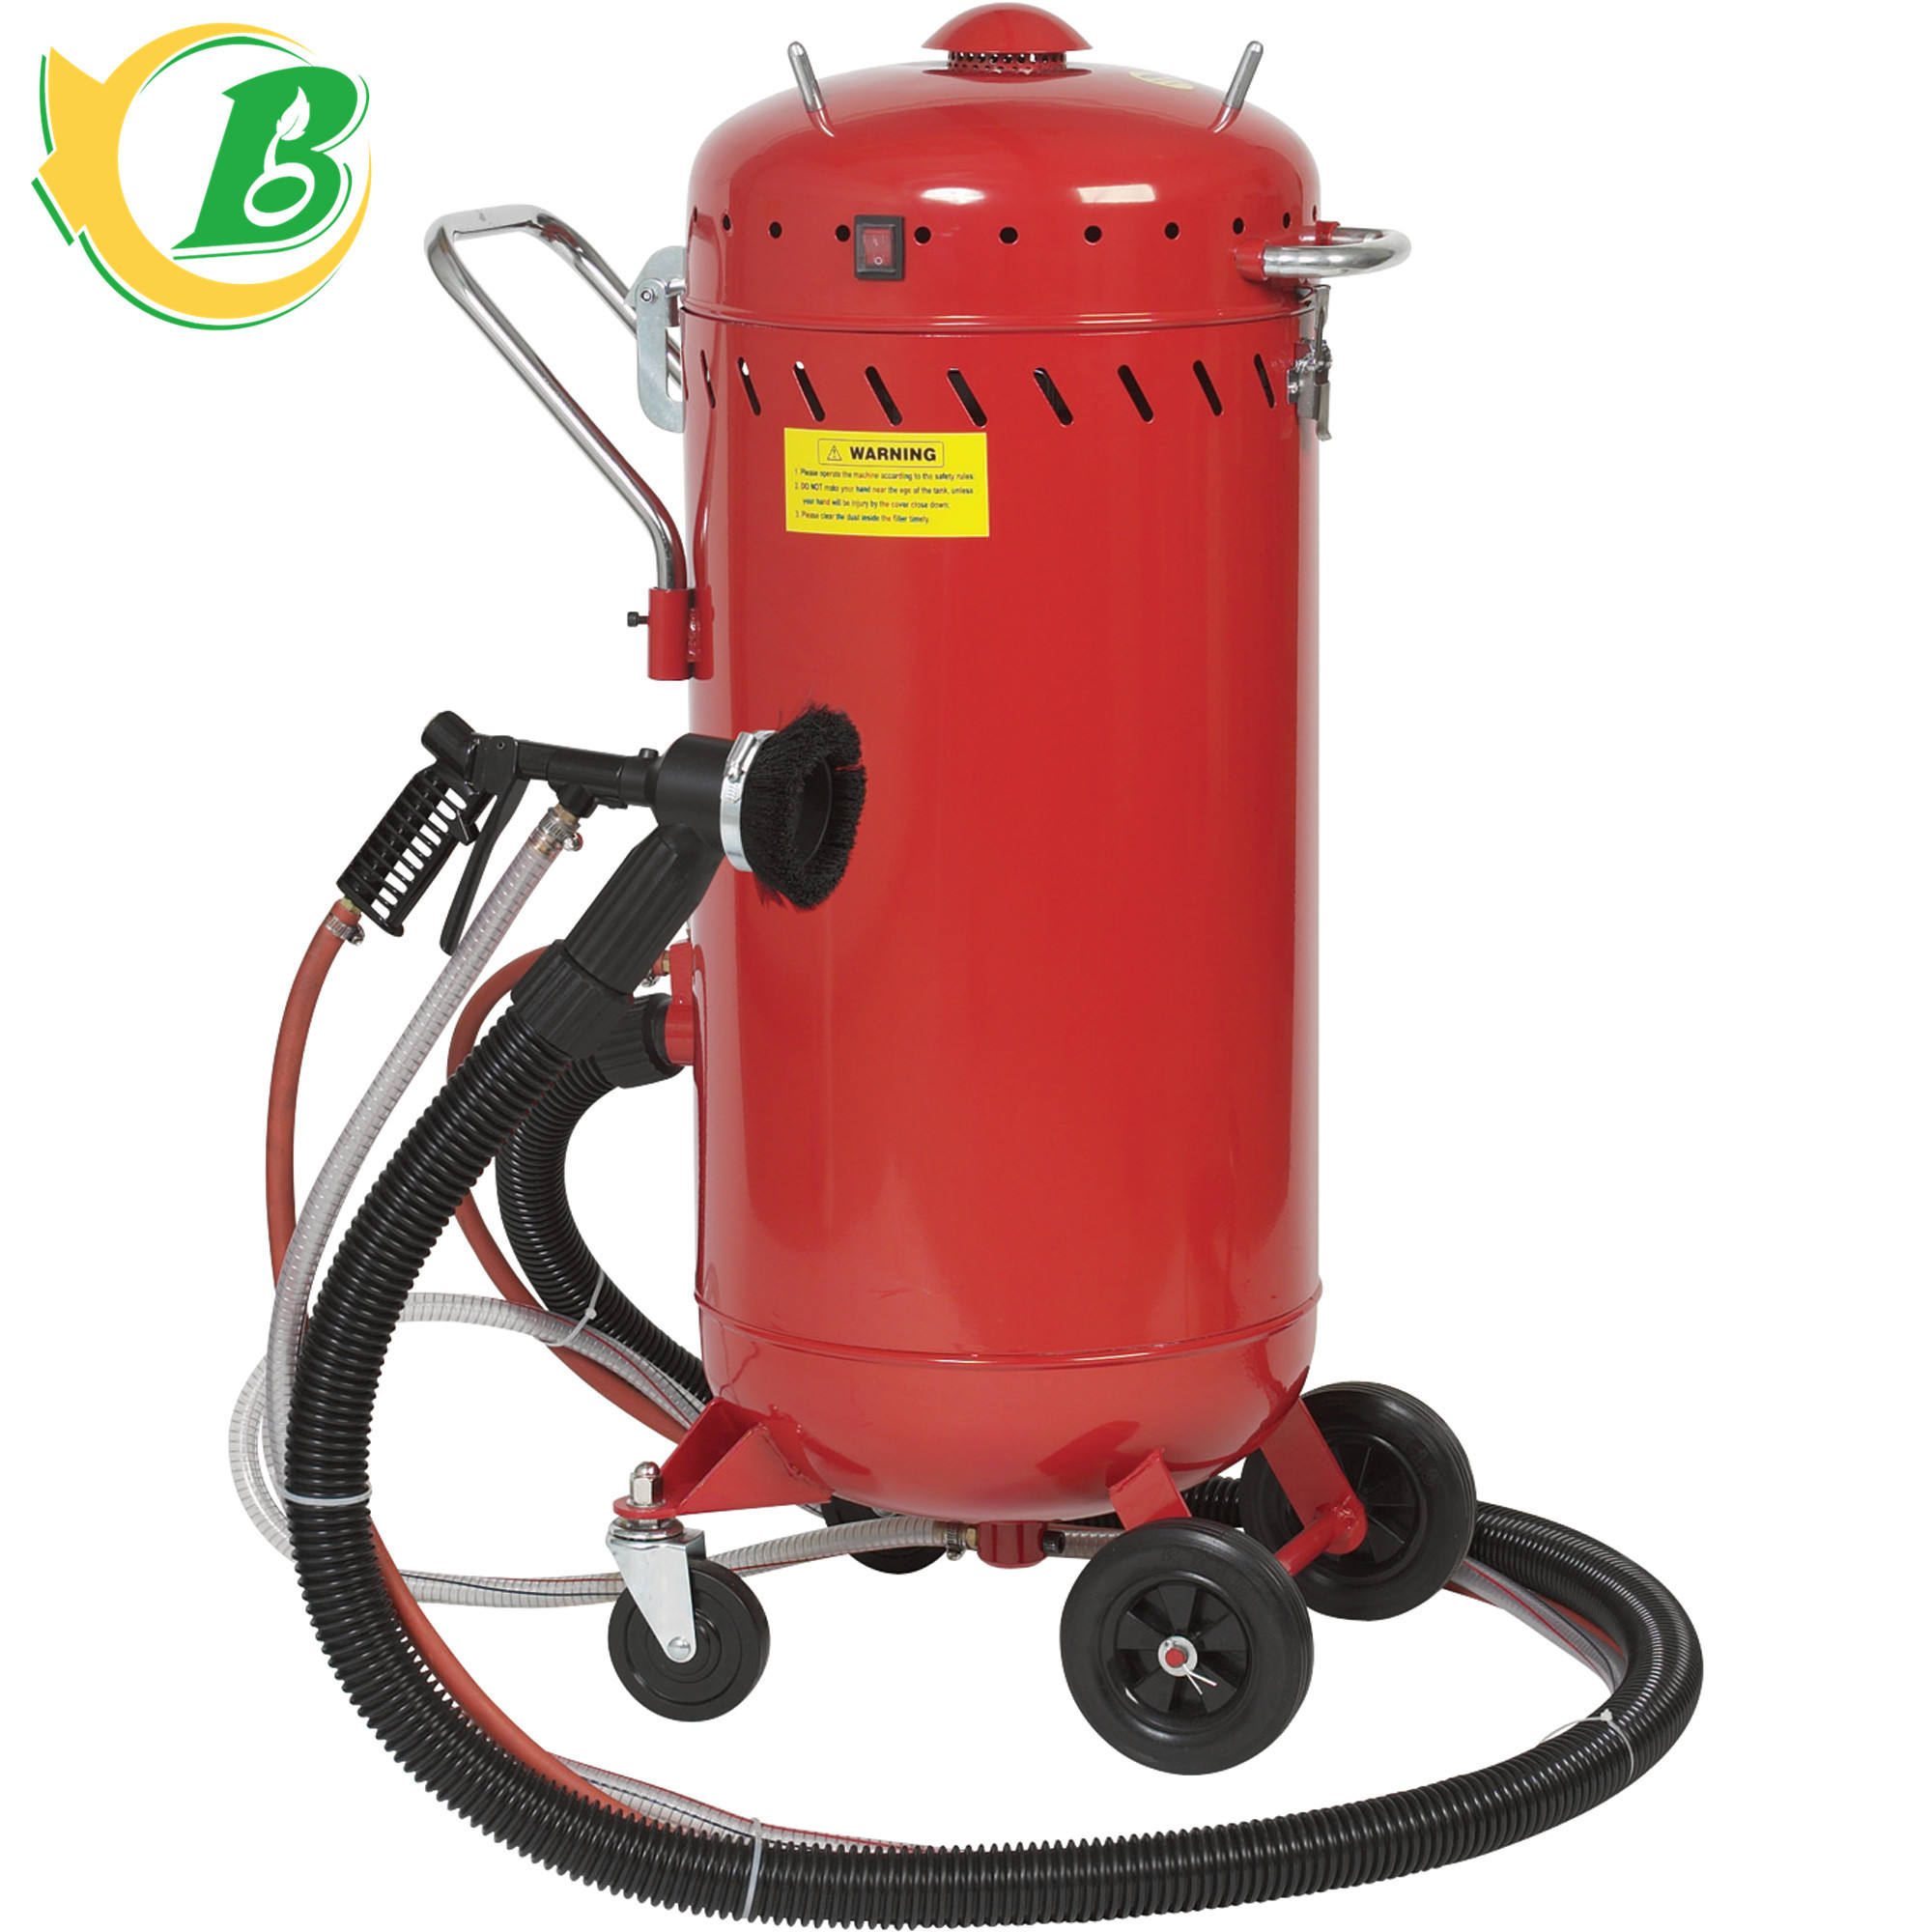 CE portable machine de sablage, sablage, sablage pot, 28 Gallons vide machine de sablage à vendre